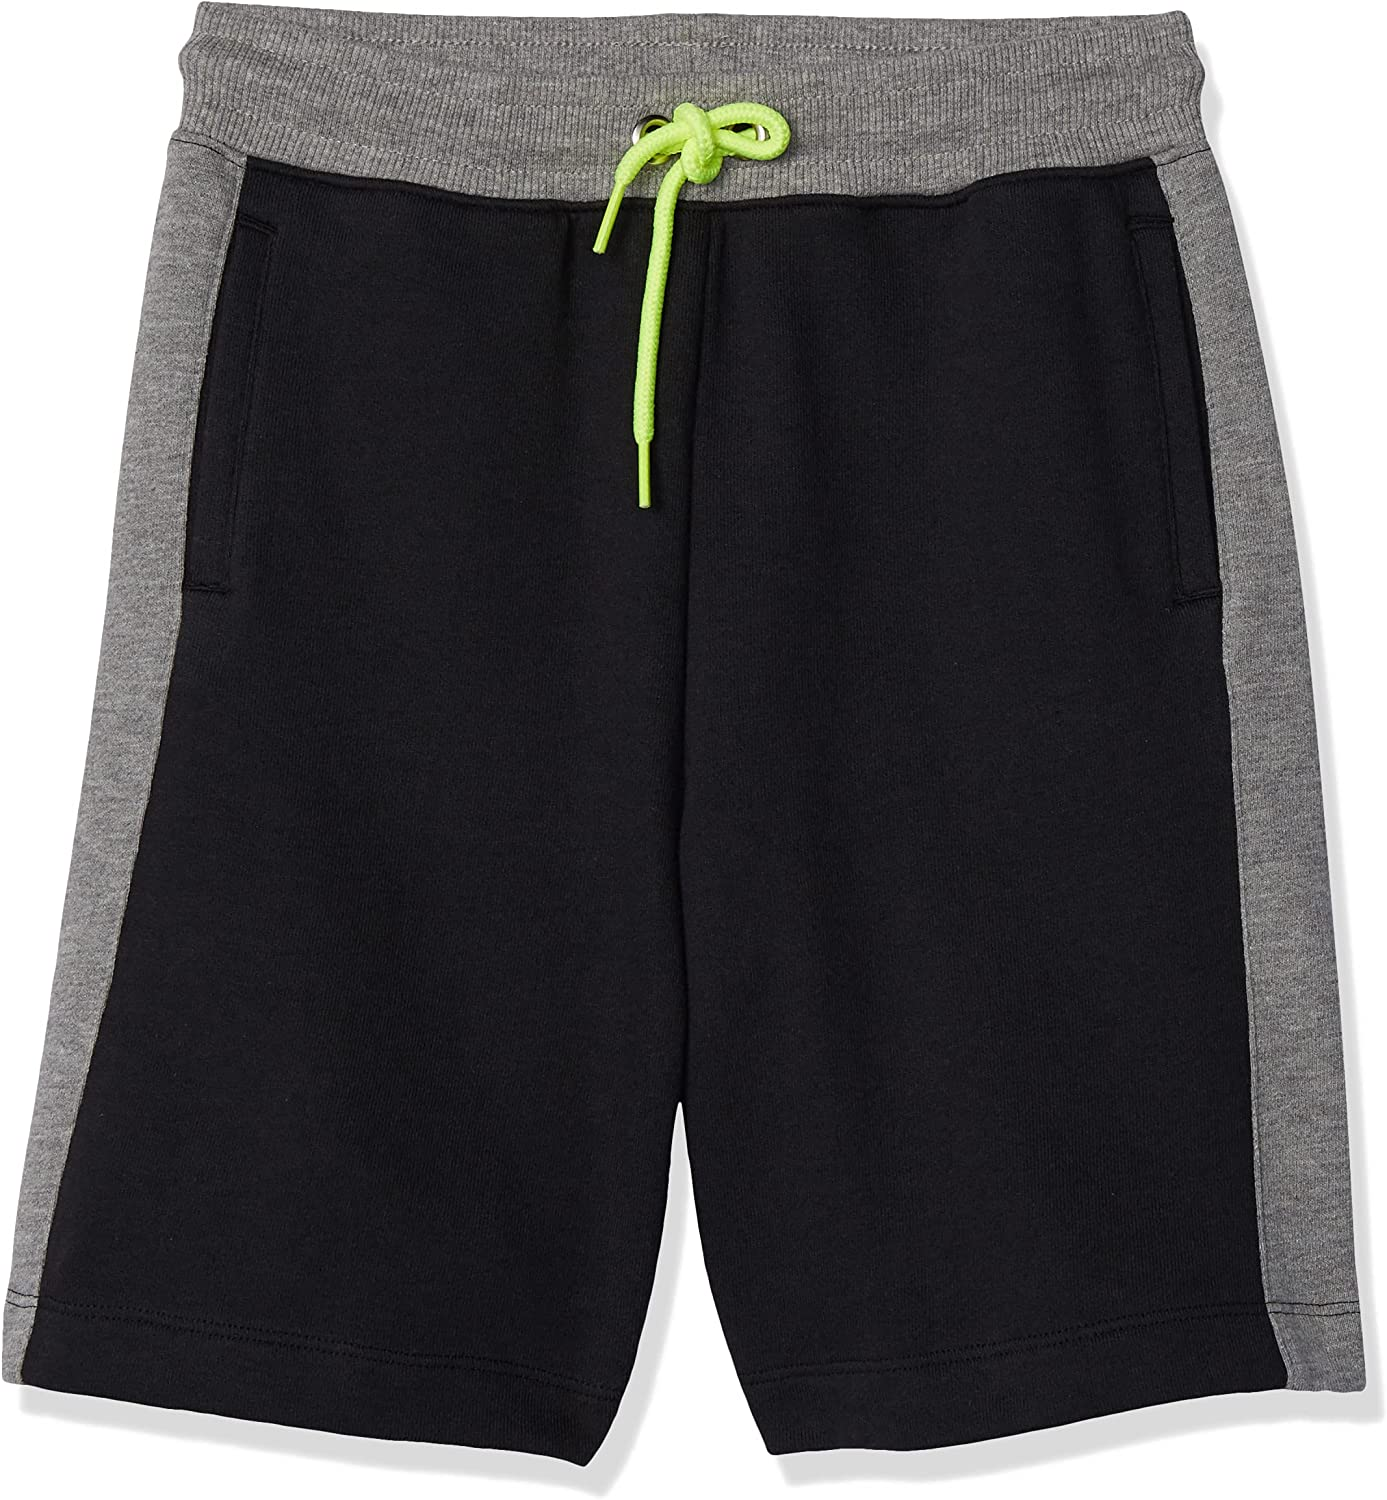 Amazon Brand - Spotted Zebra Boys' Colorblock French Terry Shorts